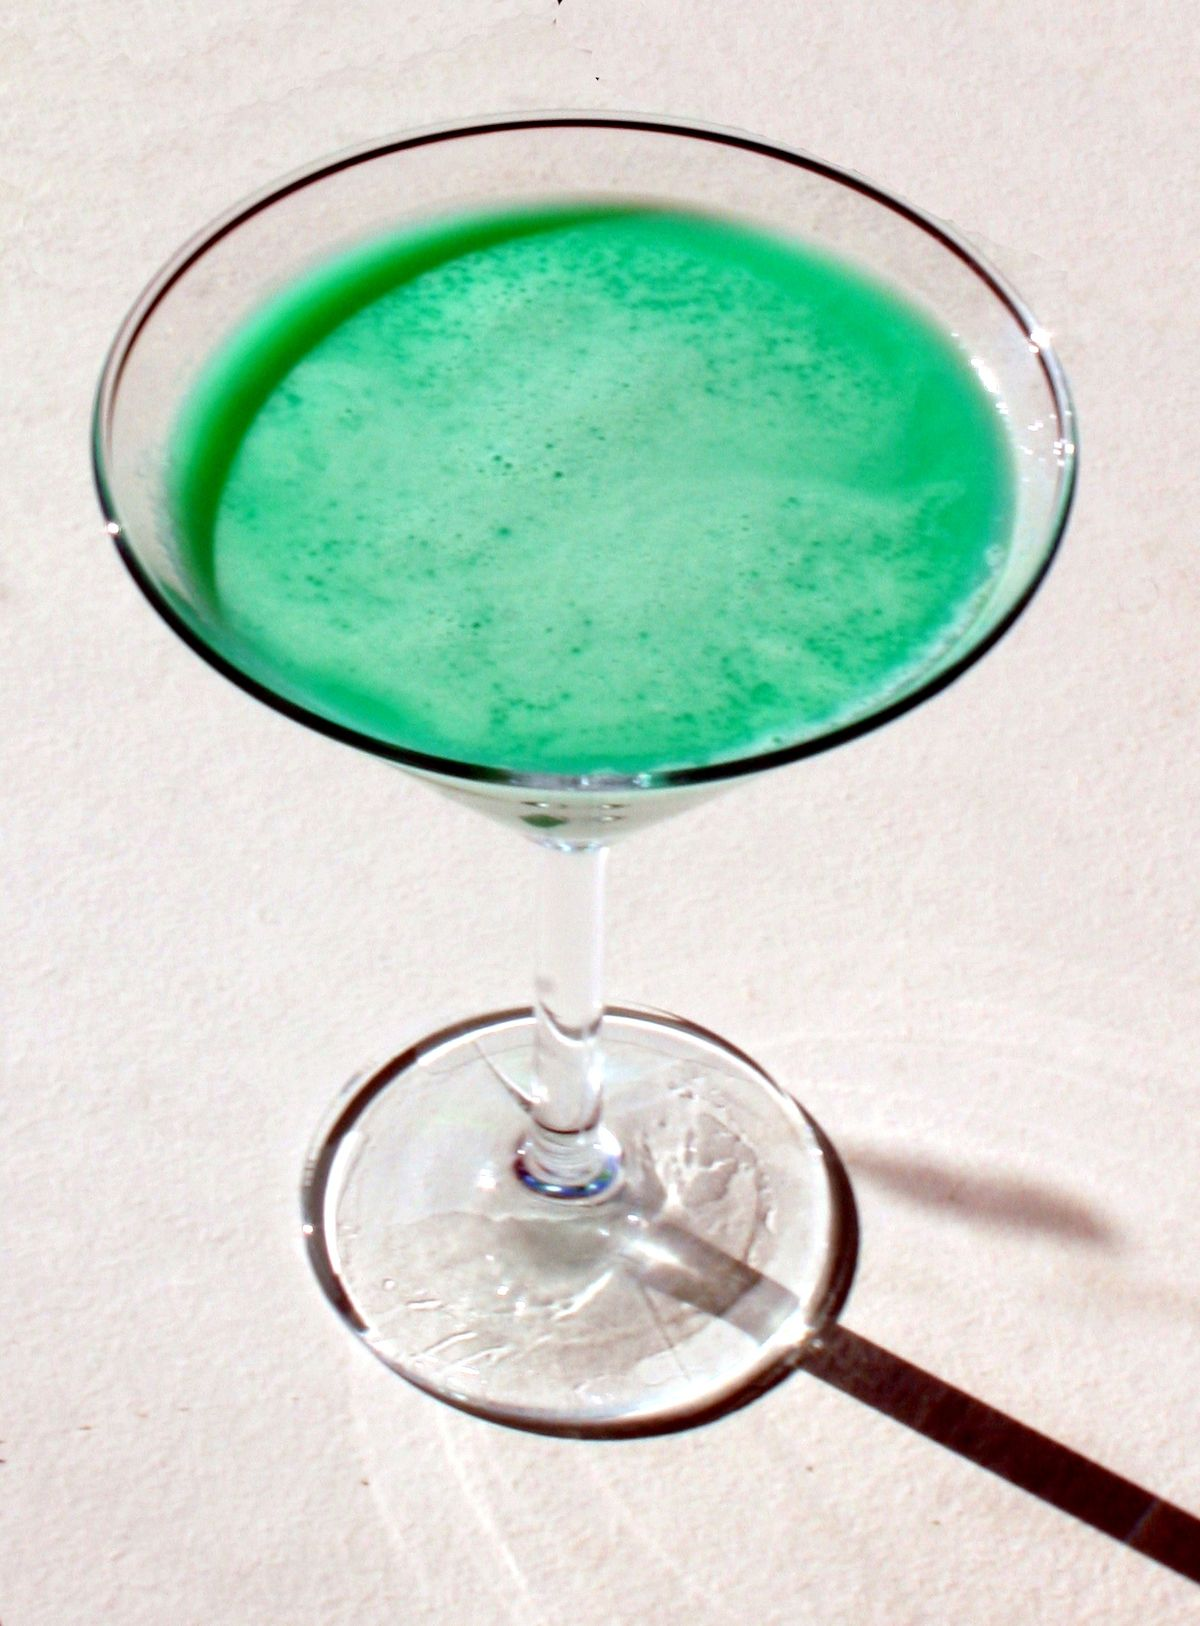 The Appletini is a green cocktail made from Pucker sour apple schnapps, vodka and sour mix, and served in a chilled cocktail glass. Aqua Thunder The Aqua Thunder is an exciting green drink made from Midori melon liqueur, blue curacao, banana liqueur, lemon juice and club soda, and served over ice .